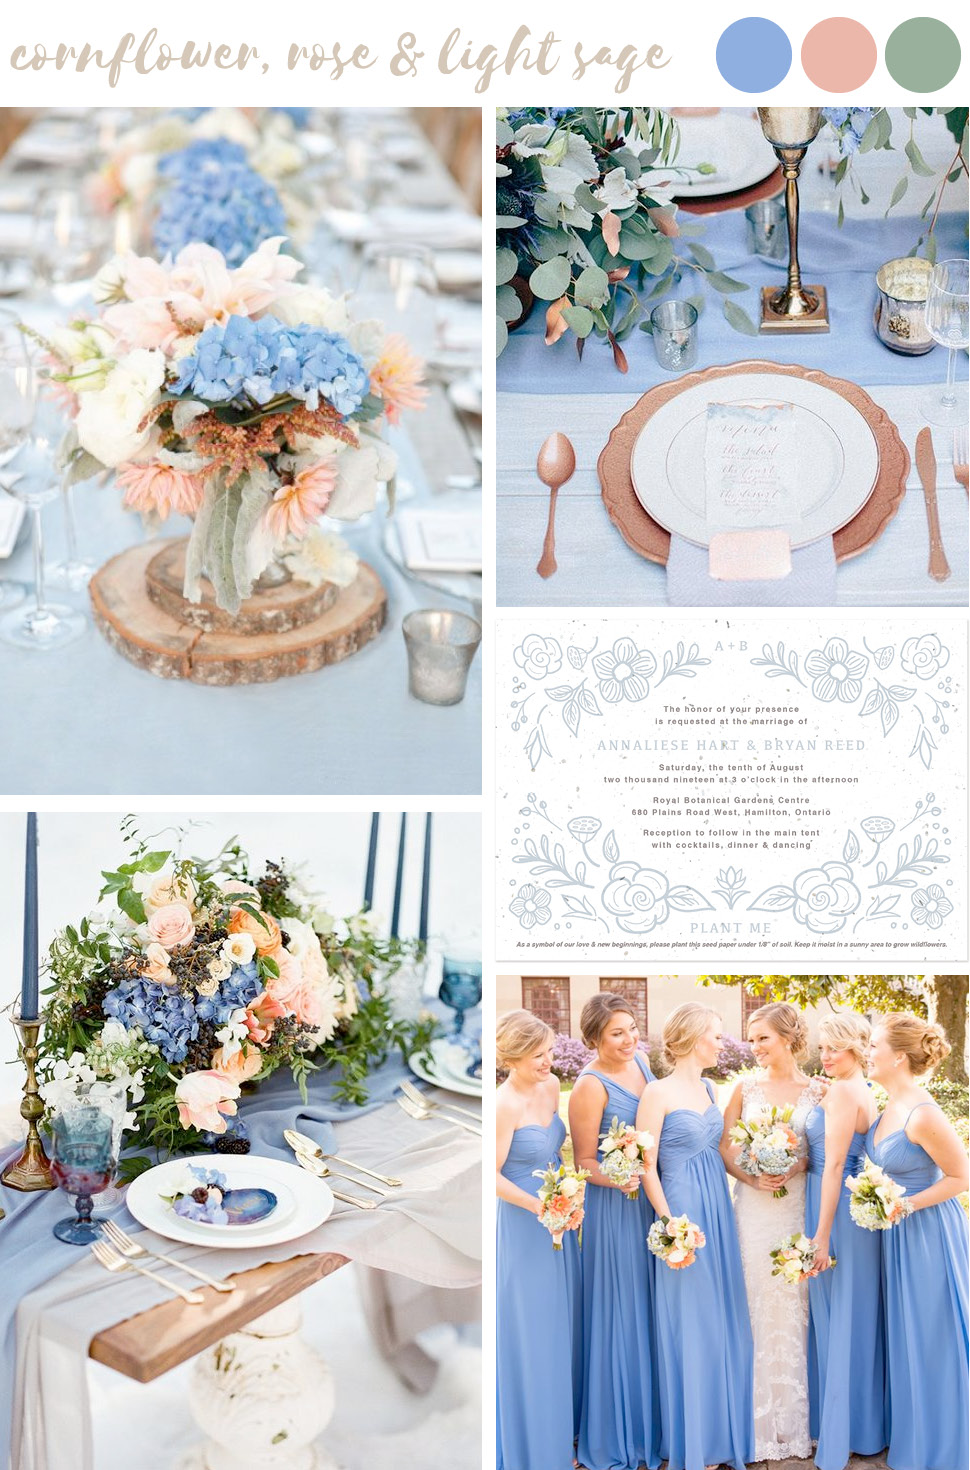 Find wedding color inspiration like this soft and dreamy cornflower, rose and light sage palette for stylish and trendy summer weddings.